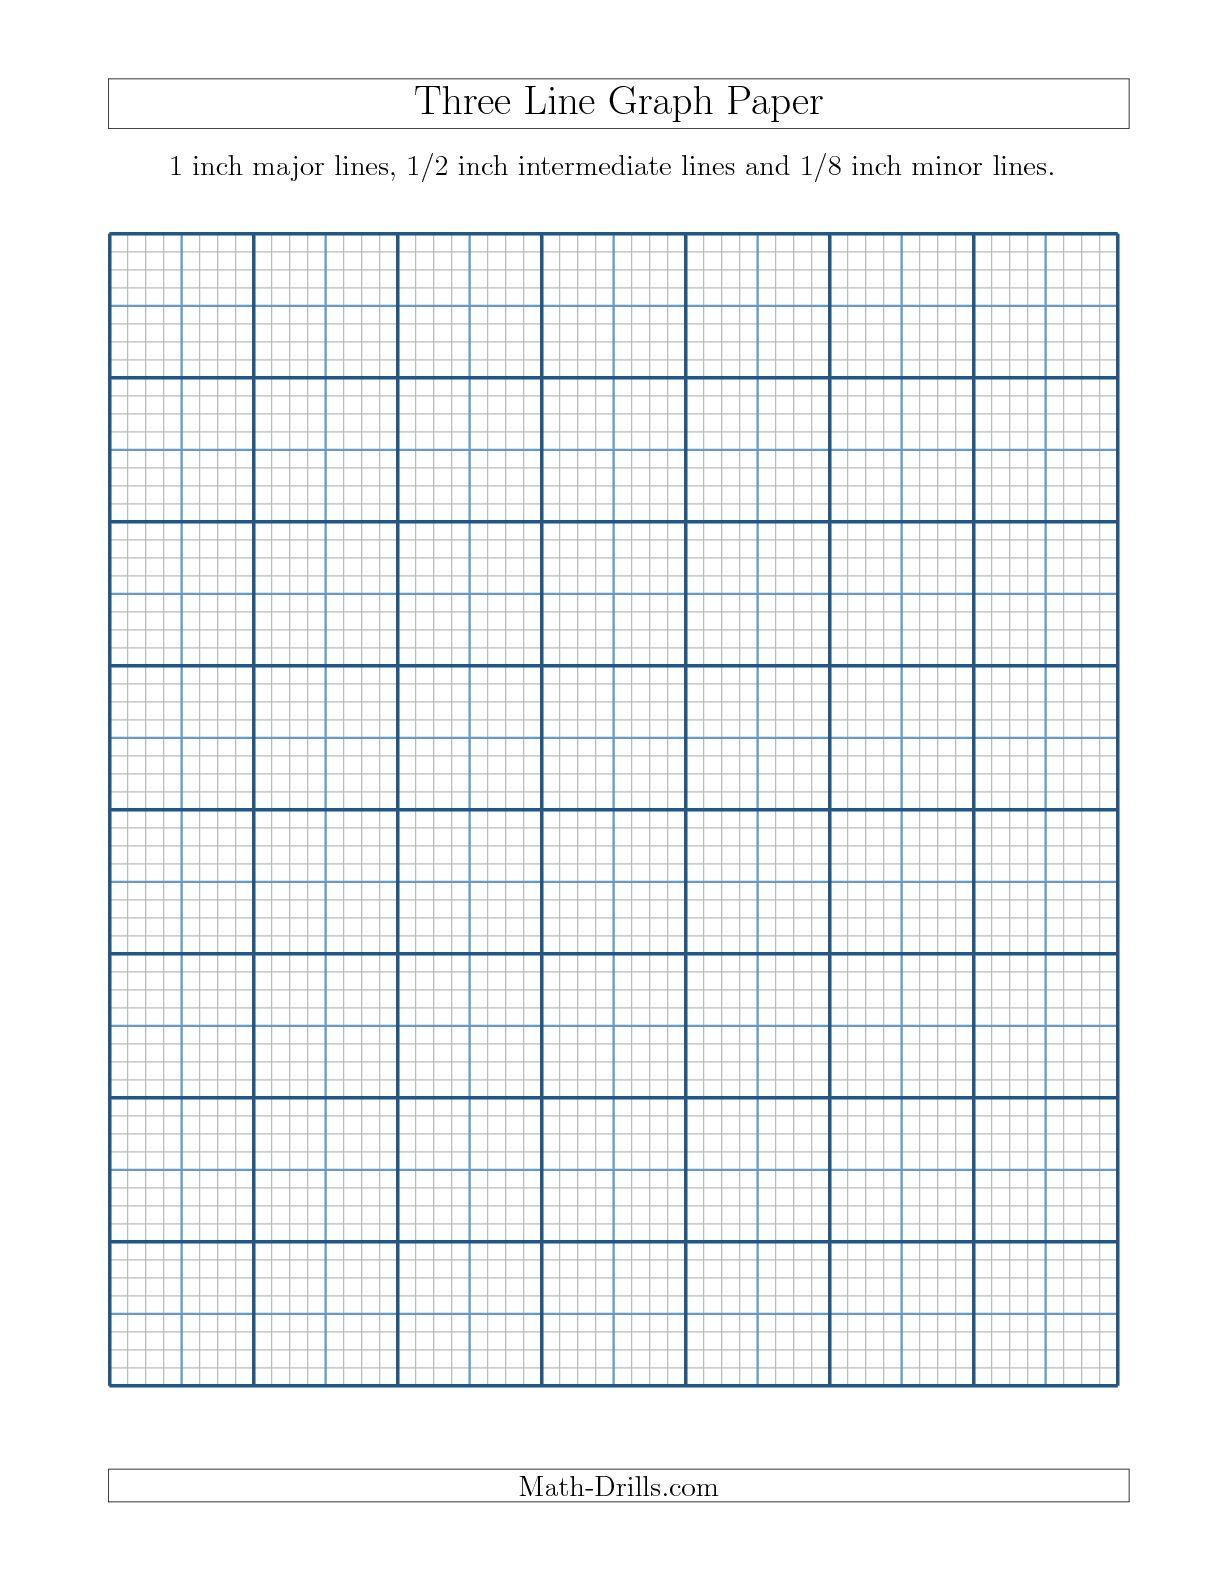 The Three Line Graph Paper With 1 Inch Major Lines 1 2 Inch Intermediate I Will Be Using A